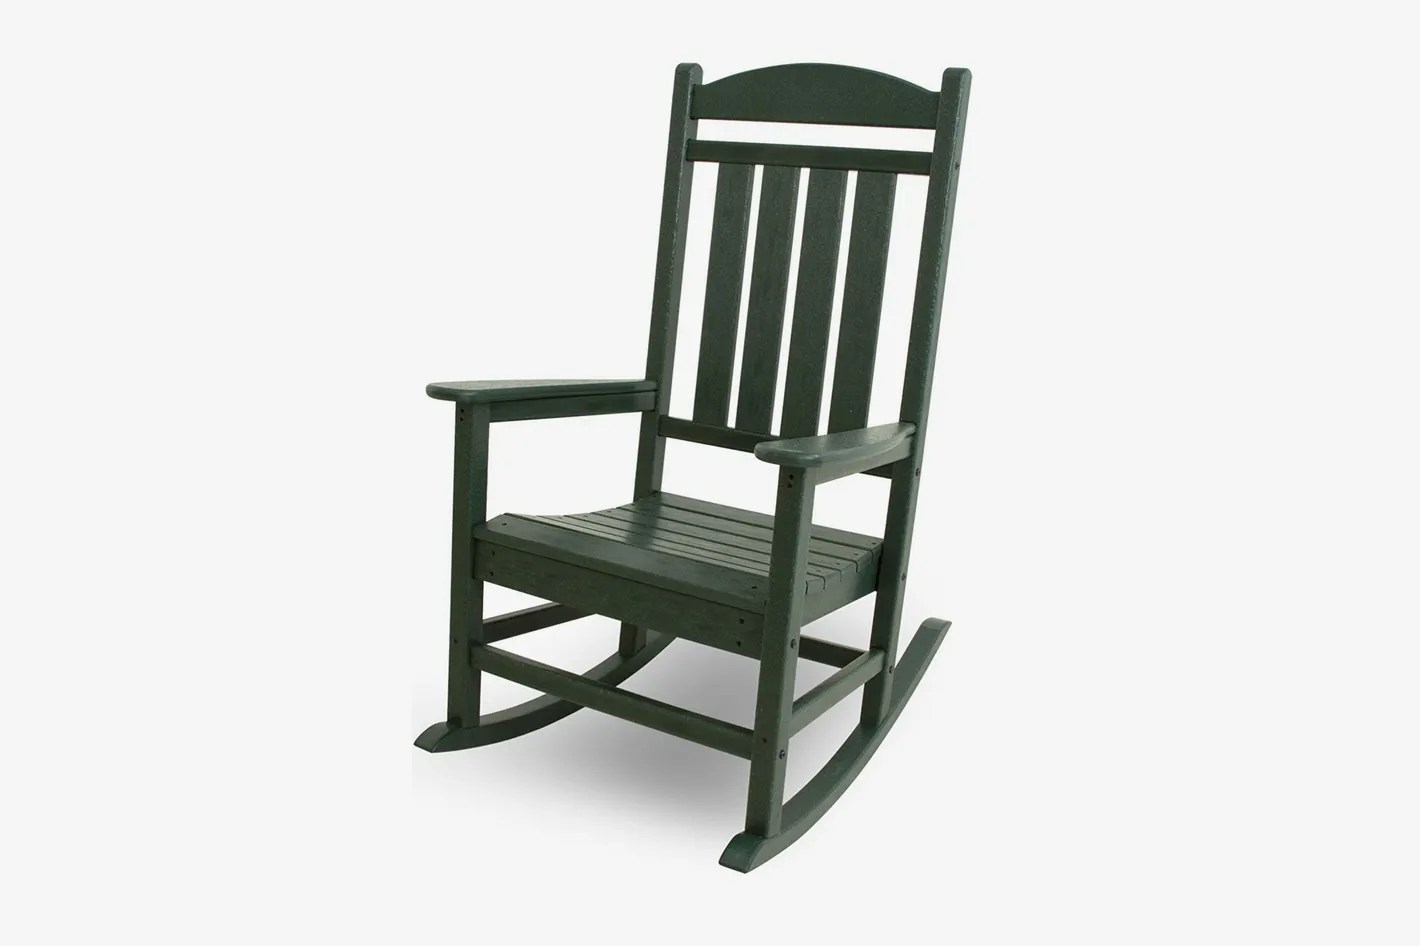 Best Place To Buy Rocking Chairs Polywood Presidential Outdoor Rocking Chair